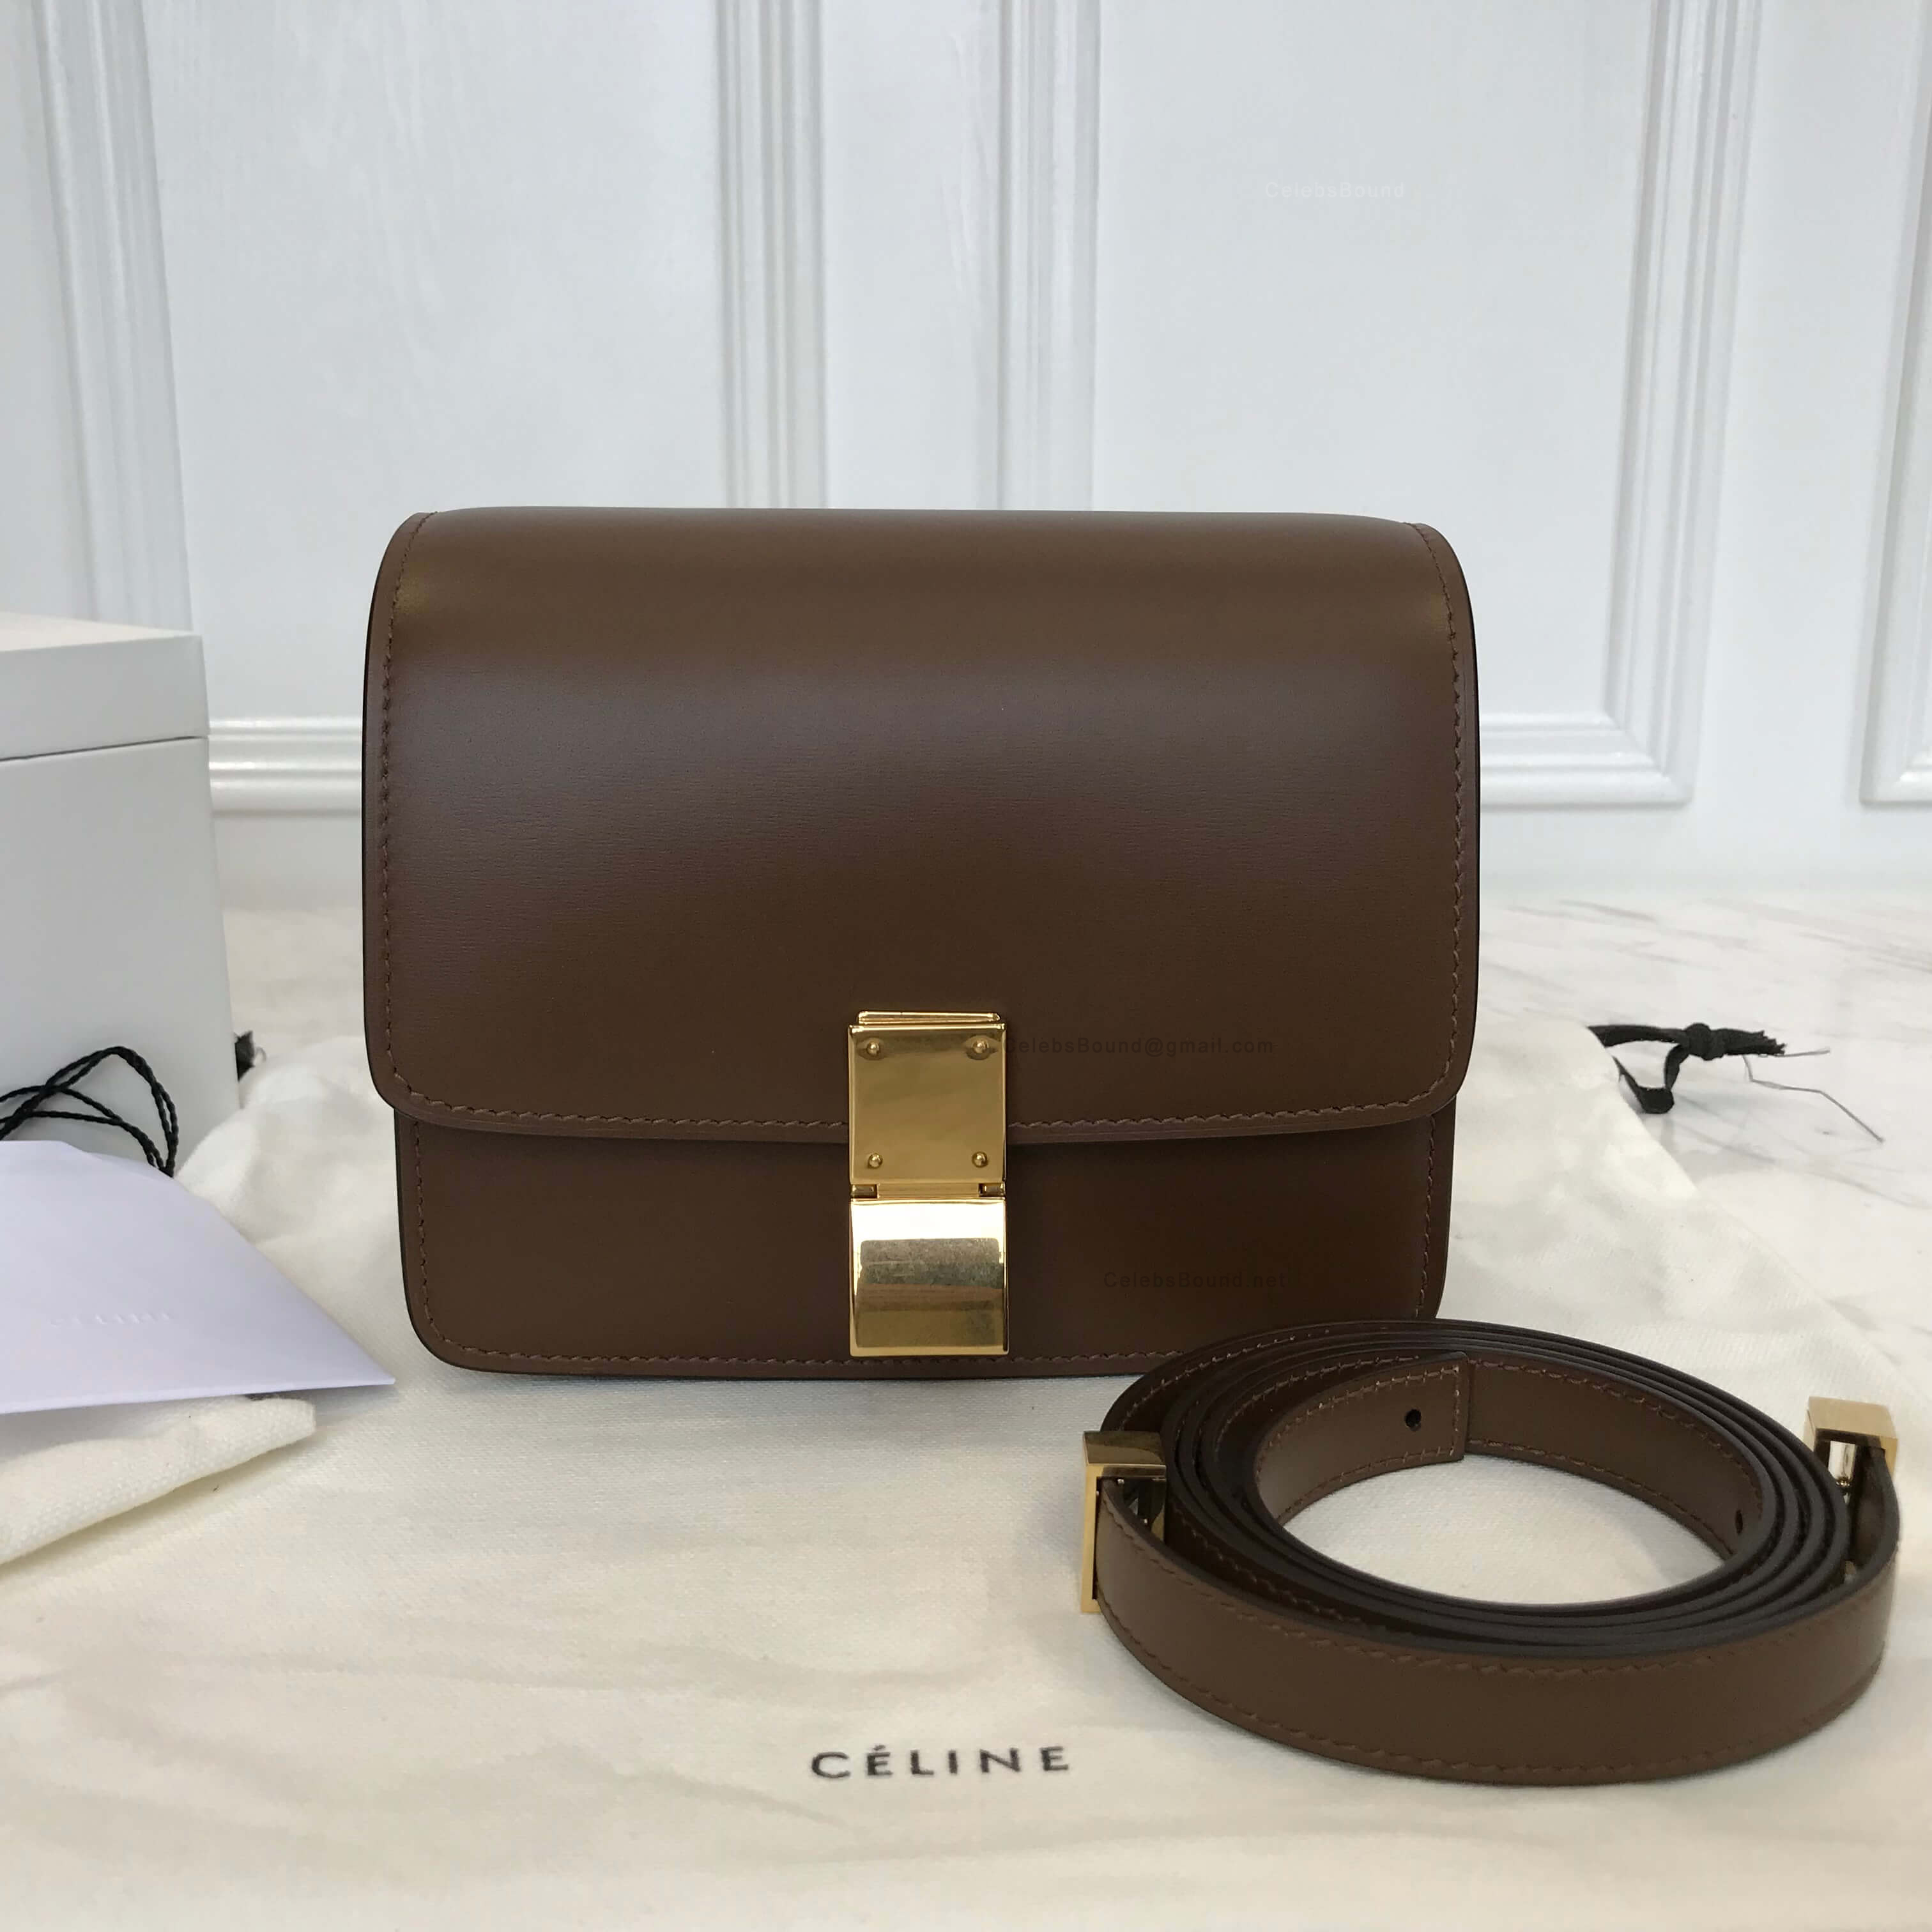 acd66baca65bb Celine Classic Box Bag Small in Brown Liege Calfskin -